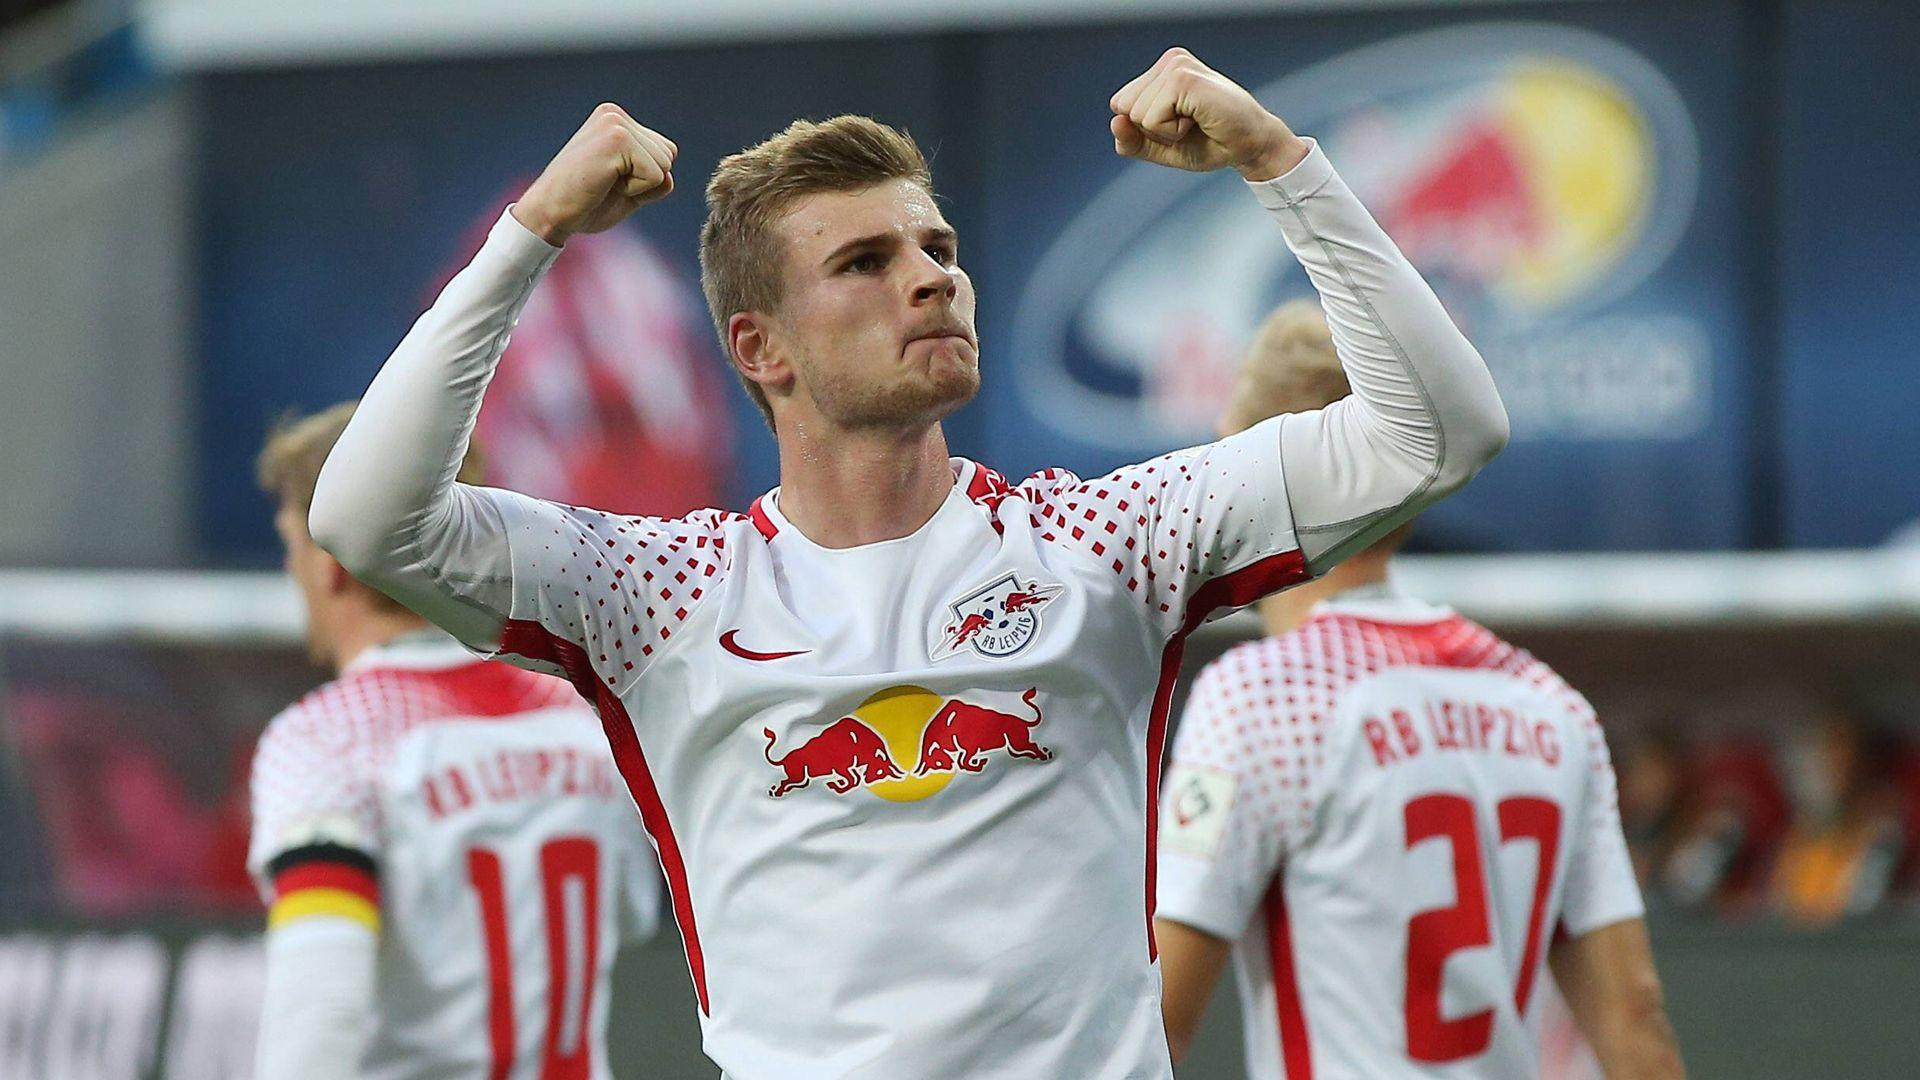 Timo Werner: 10 things on the jet